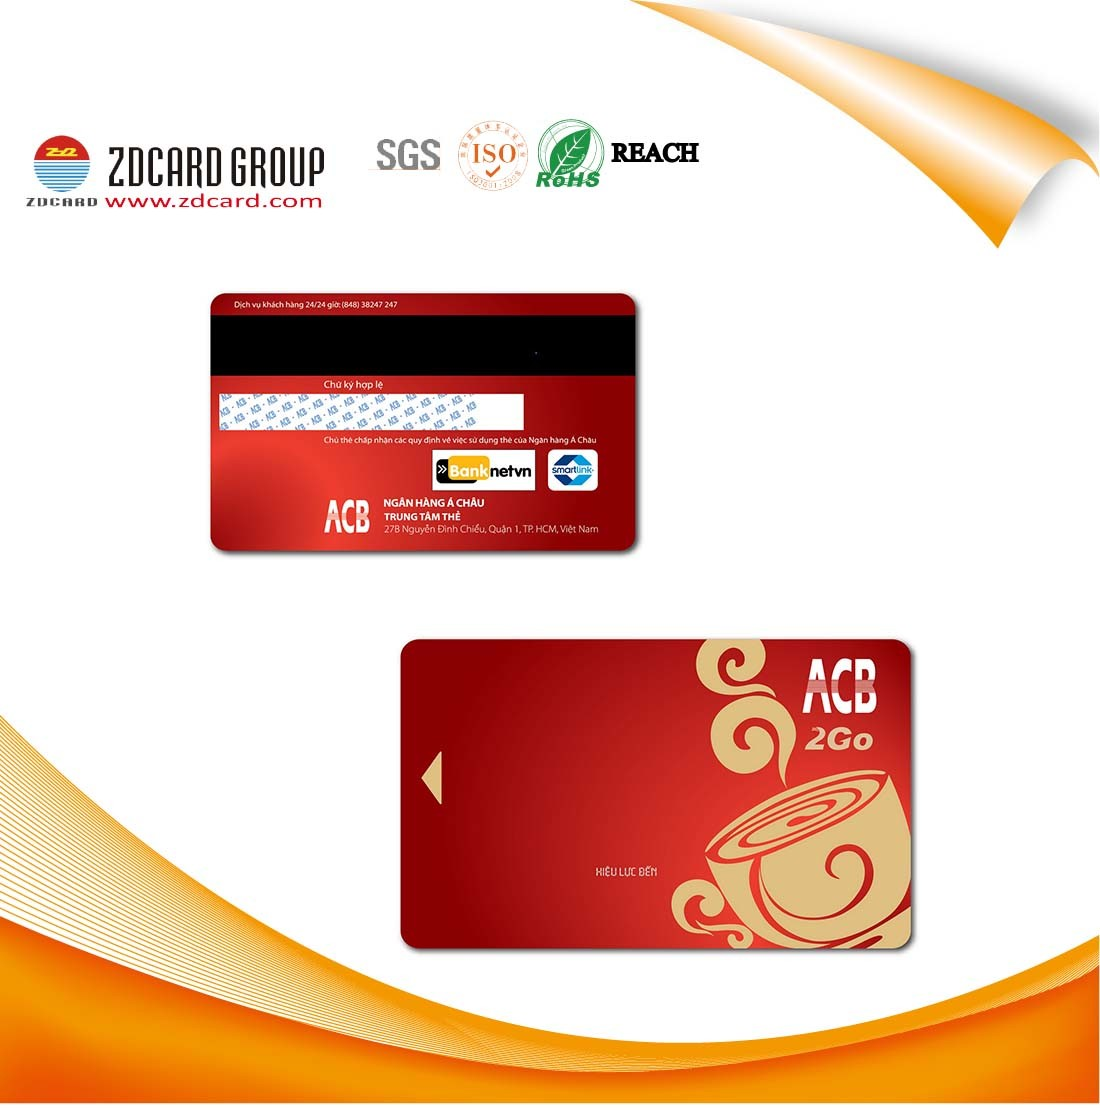 China beautiful sight pvc id card gift membership card photos china beautiful sight pvc id card gift membership card altavistaventures Gallery